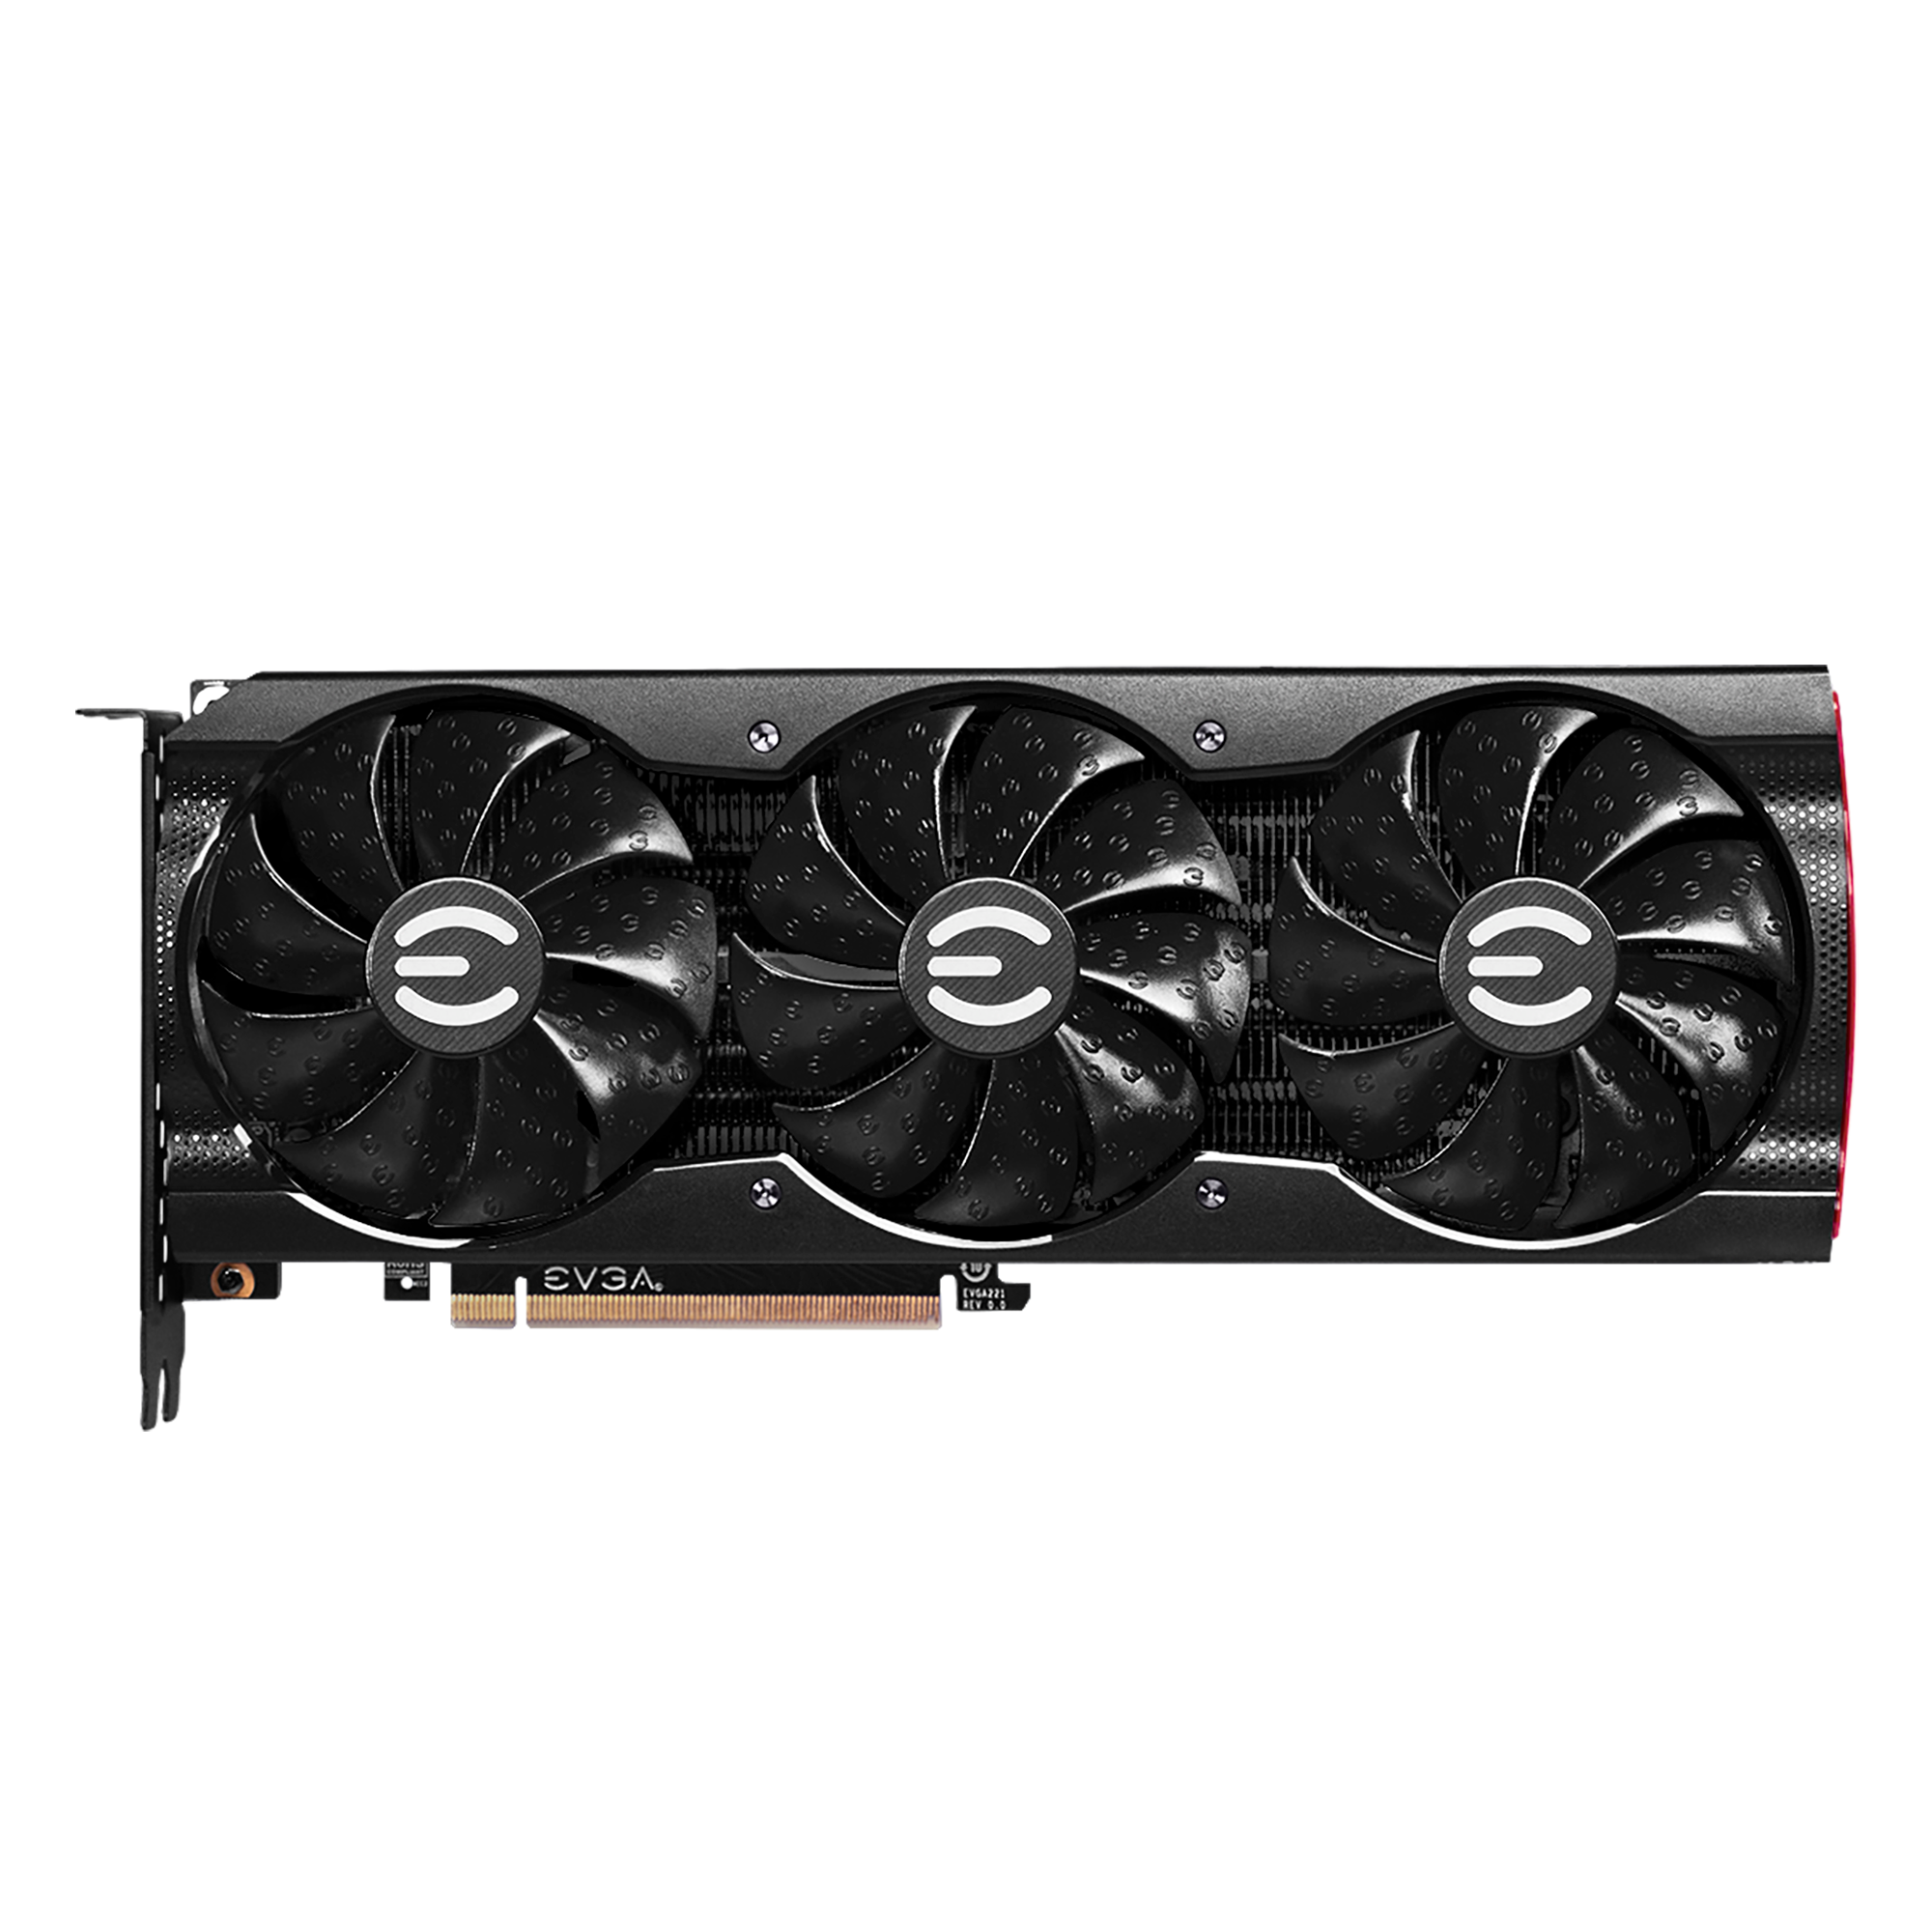 EVGA 3070 XC3 BLACK 8GB GDDR6 iCX3 Cooling ARGB BACKORDER